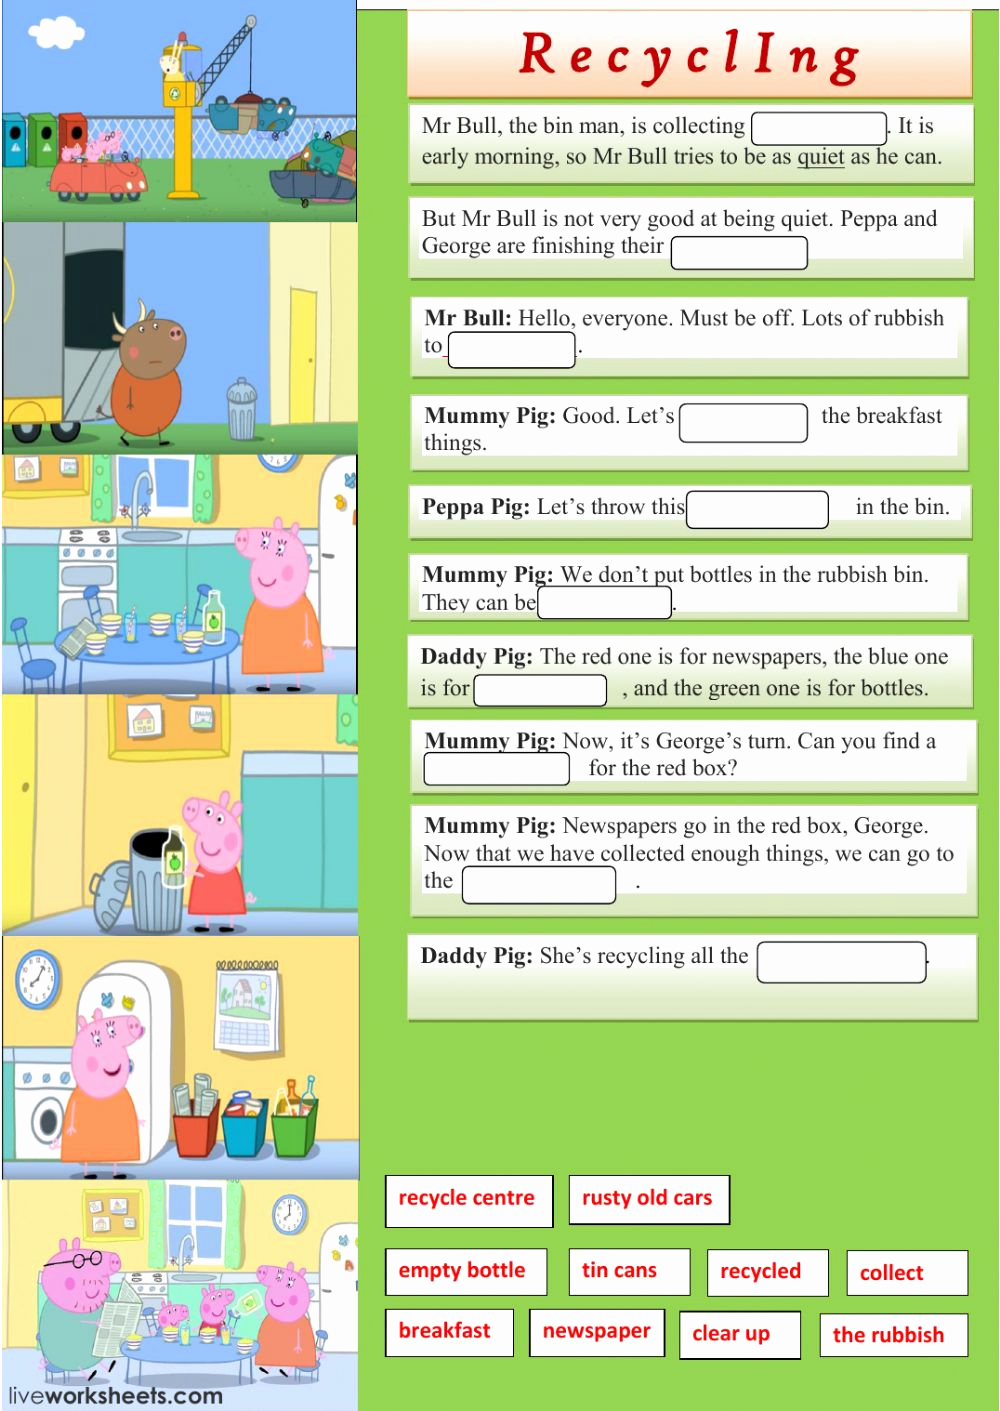 Free Recycling Worksheets Elegant Reduce Reuse Recycle Worksheets for 1st Grade